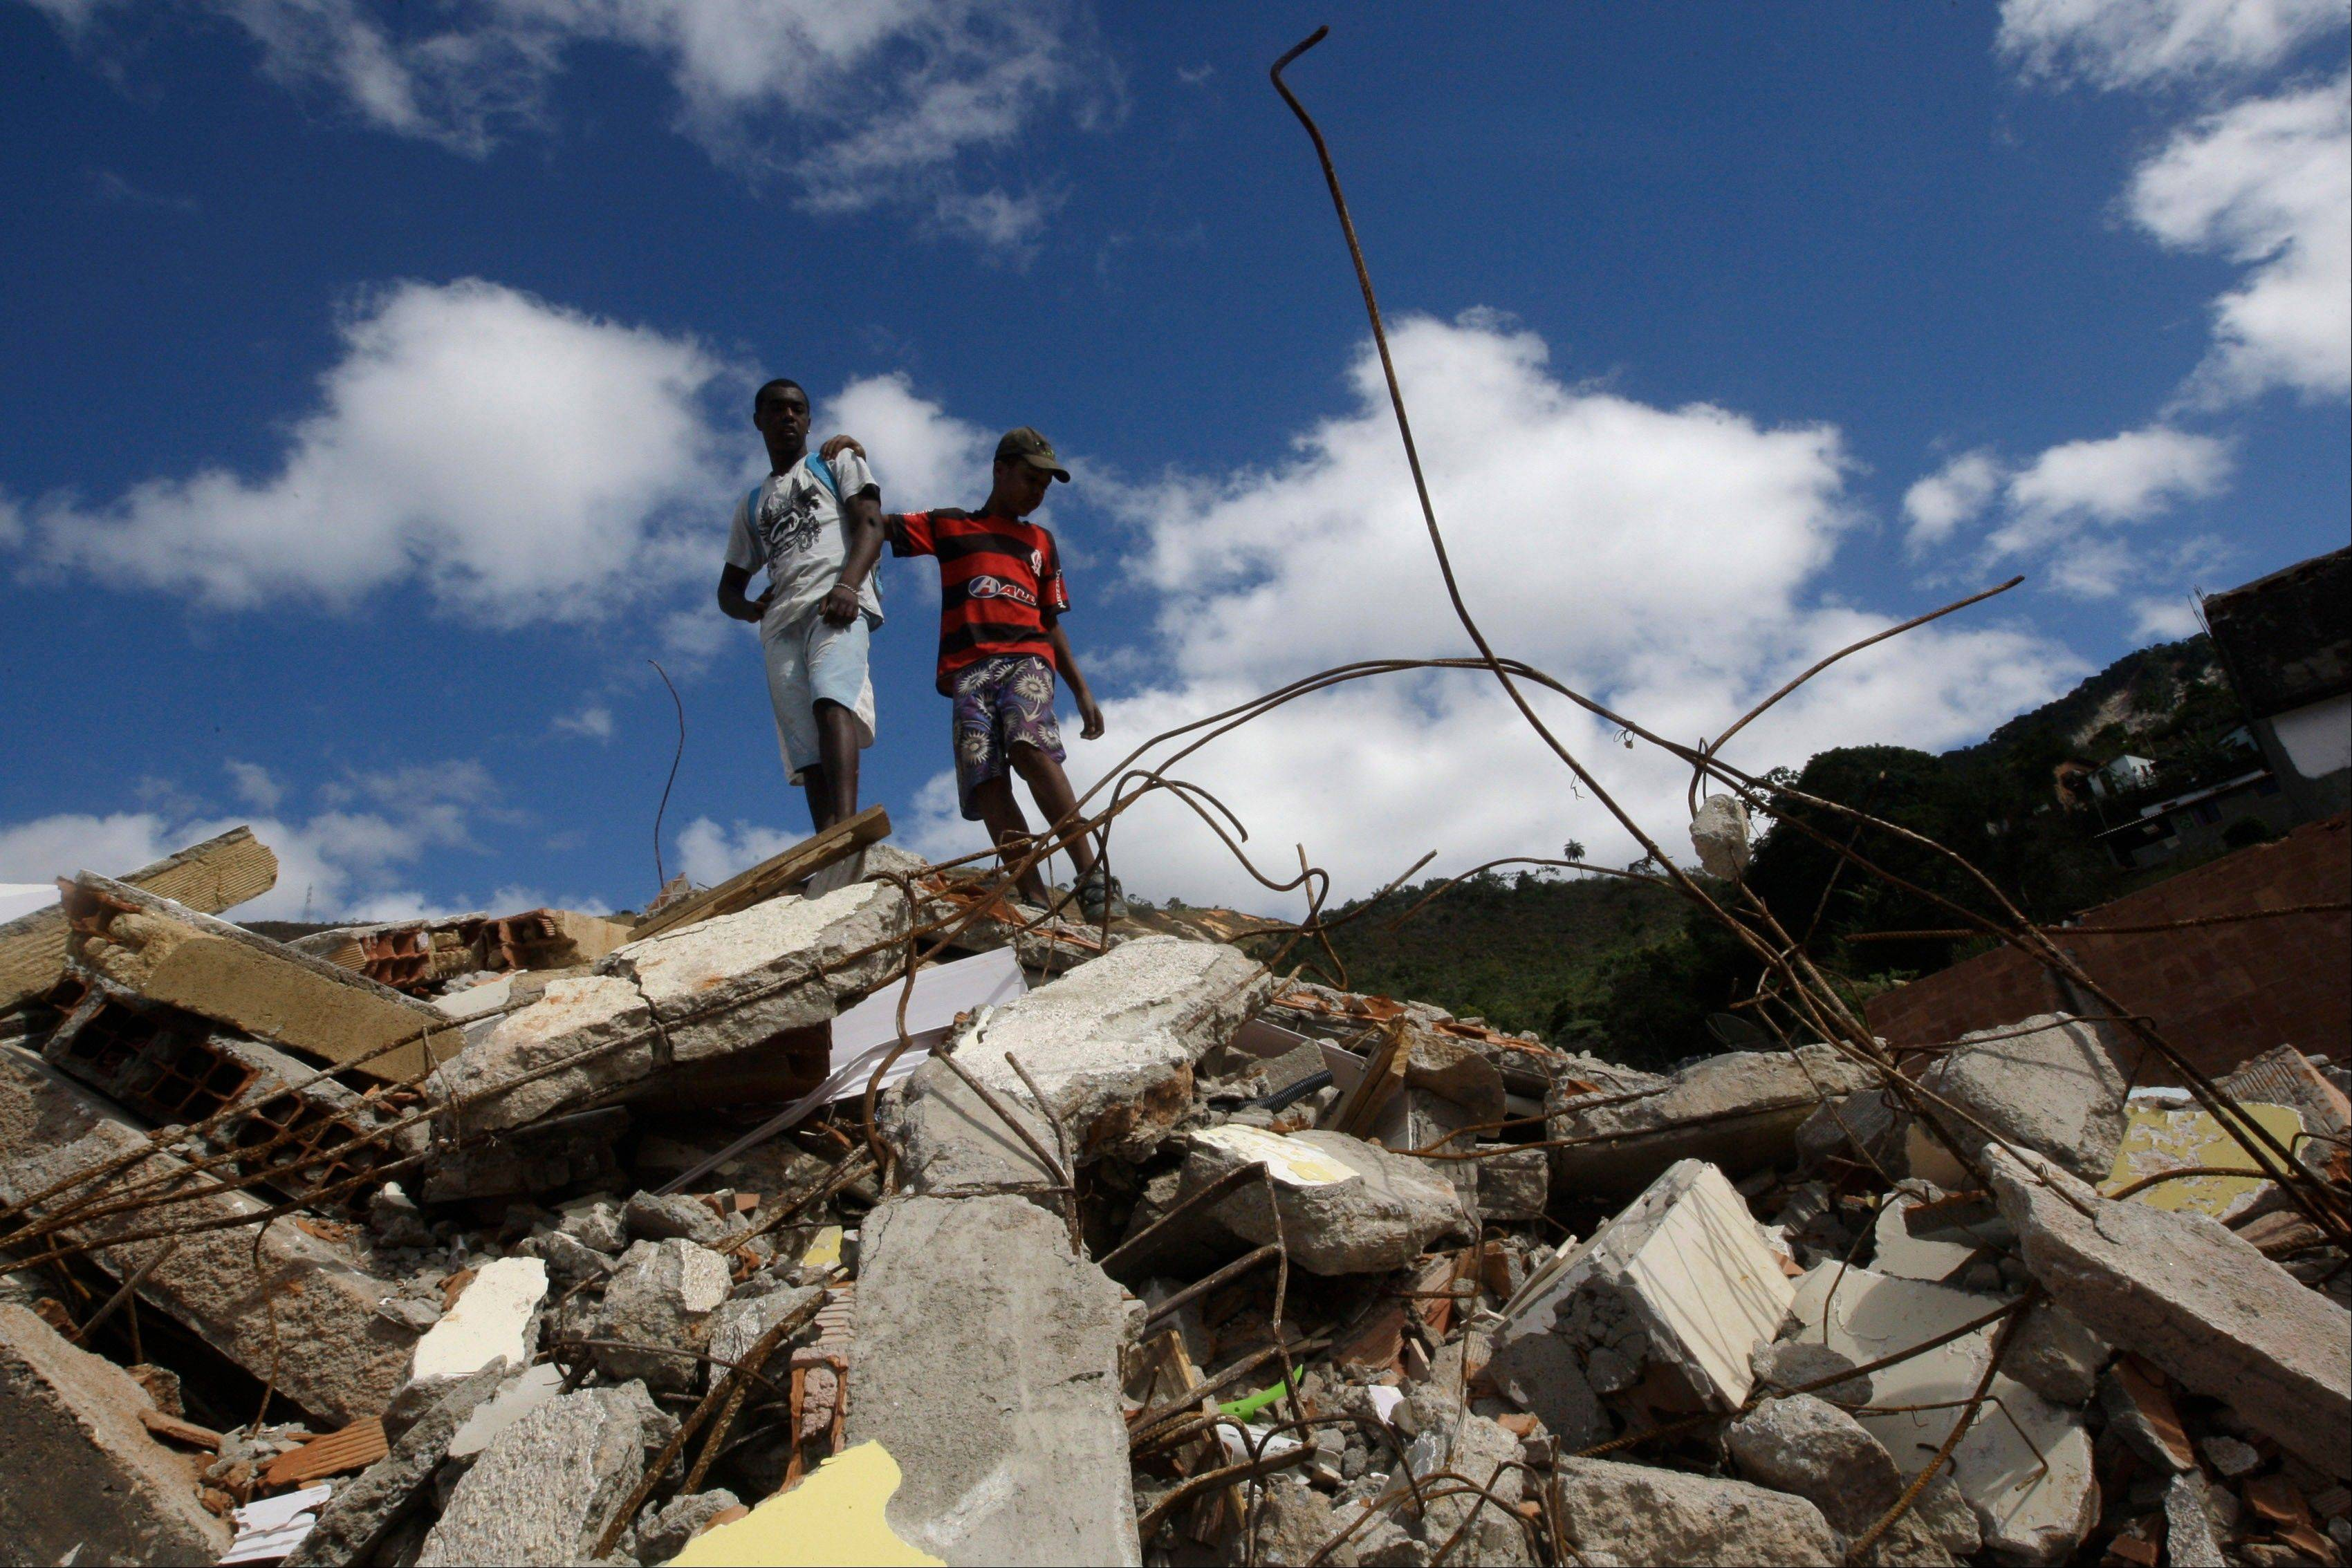 Julio Cesar, 18, left, and friend Vitor, 14, stand on the debris of Cesar�s house, destroyed by a January mudslide, in Teresopolis, Brazil.